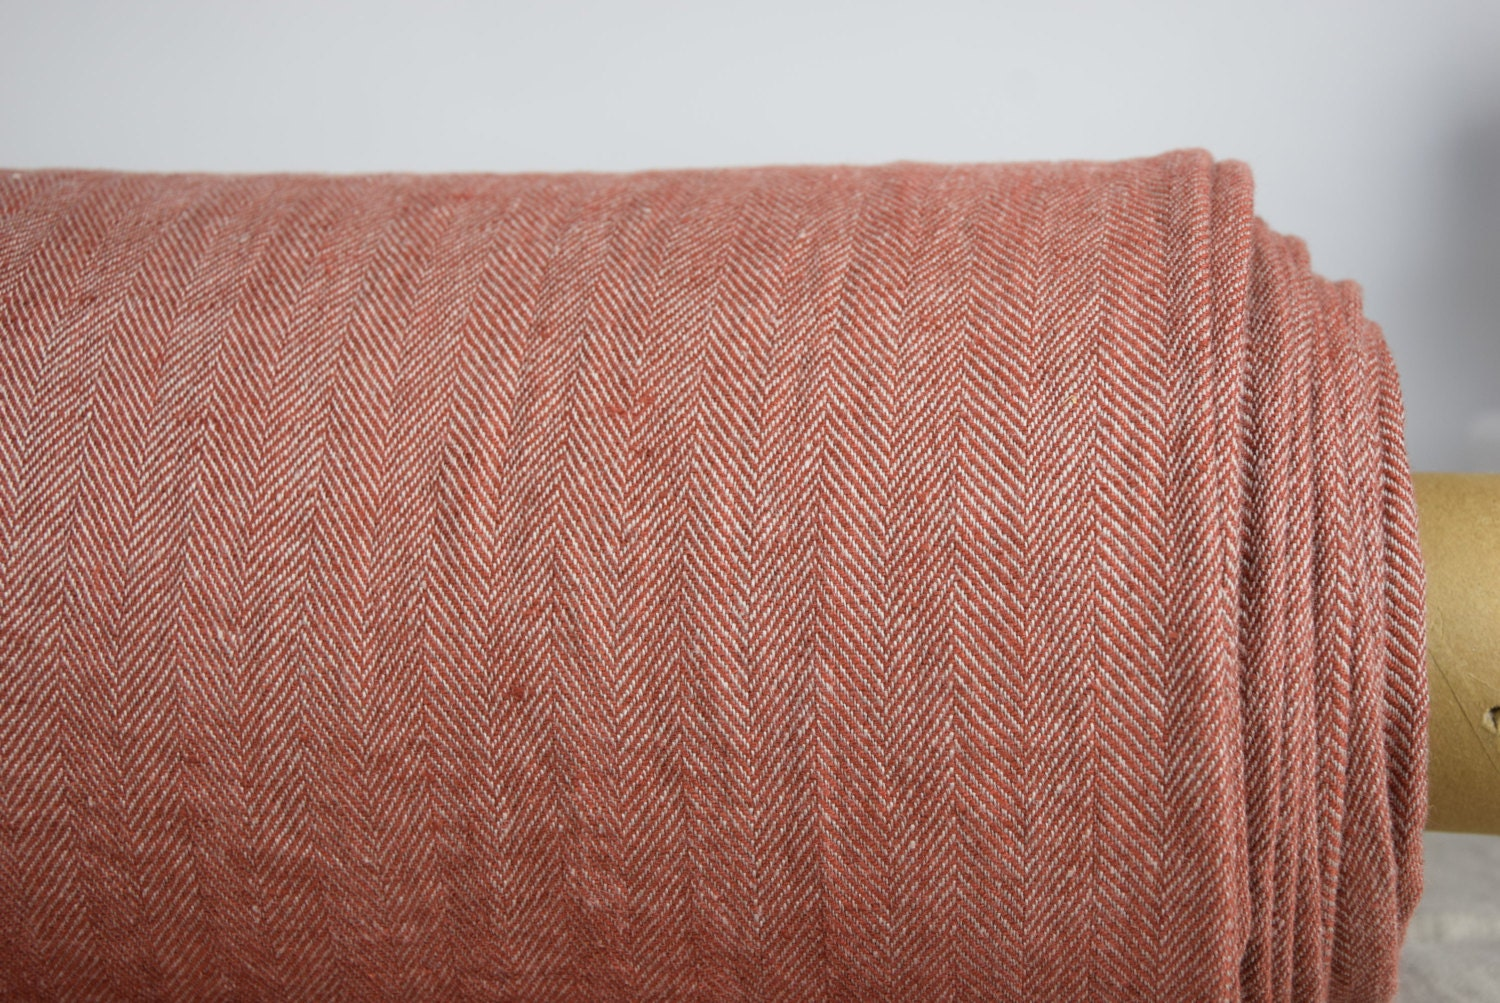 Pure 100% linen fabric 240gsm. Herringbone tweed, not dyed flax ...